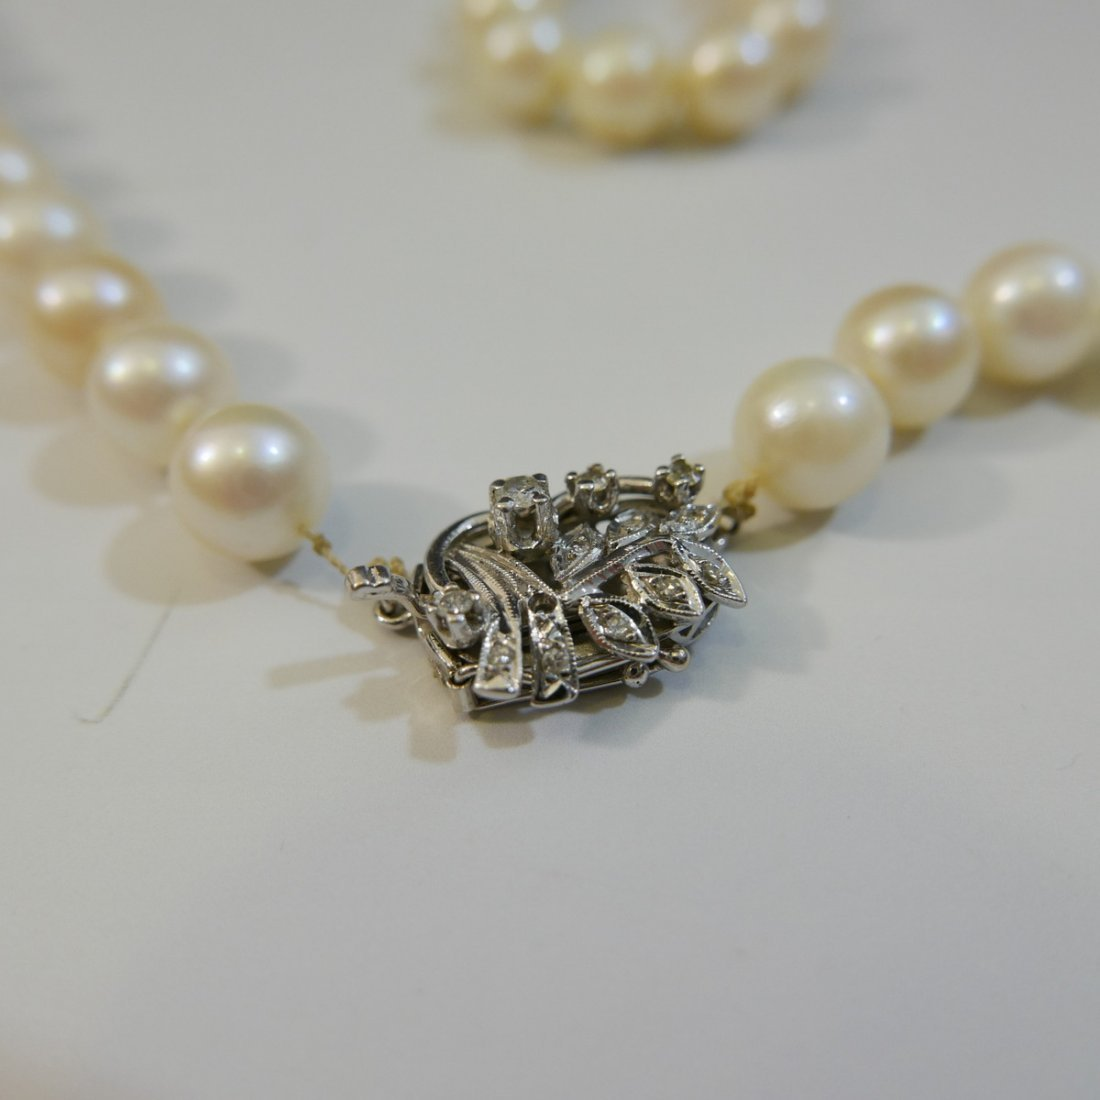 ELEGANT NATURAL PEARL NECKLACE WITH 14K WHITE GOLD - 2